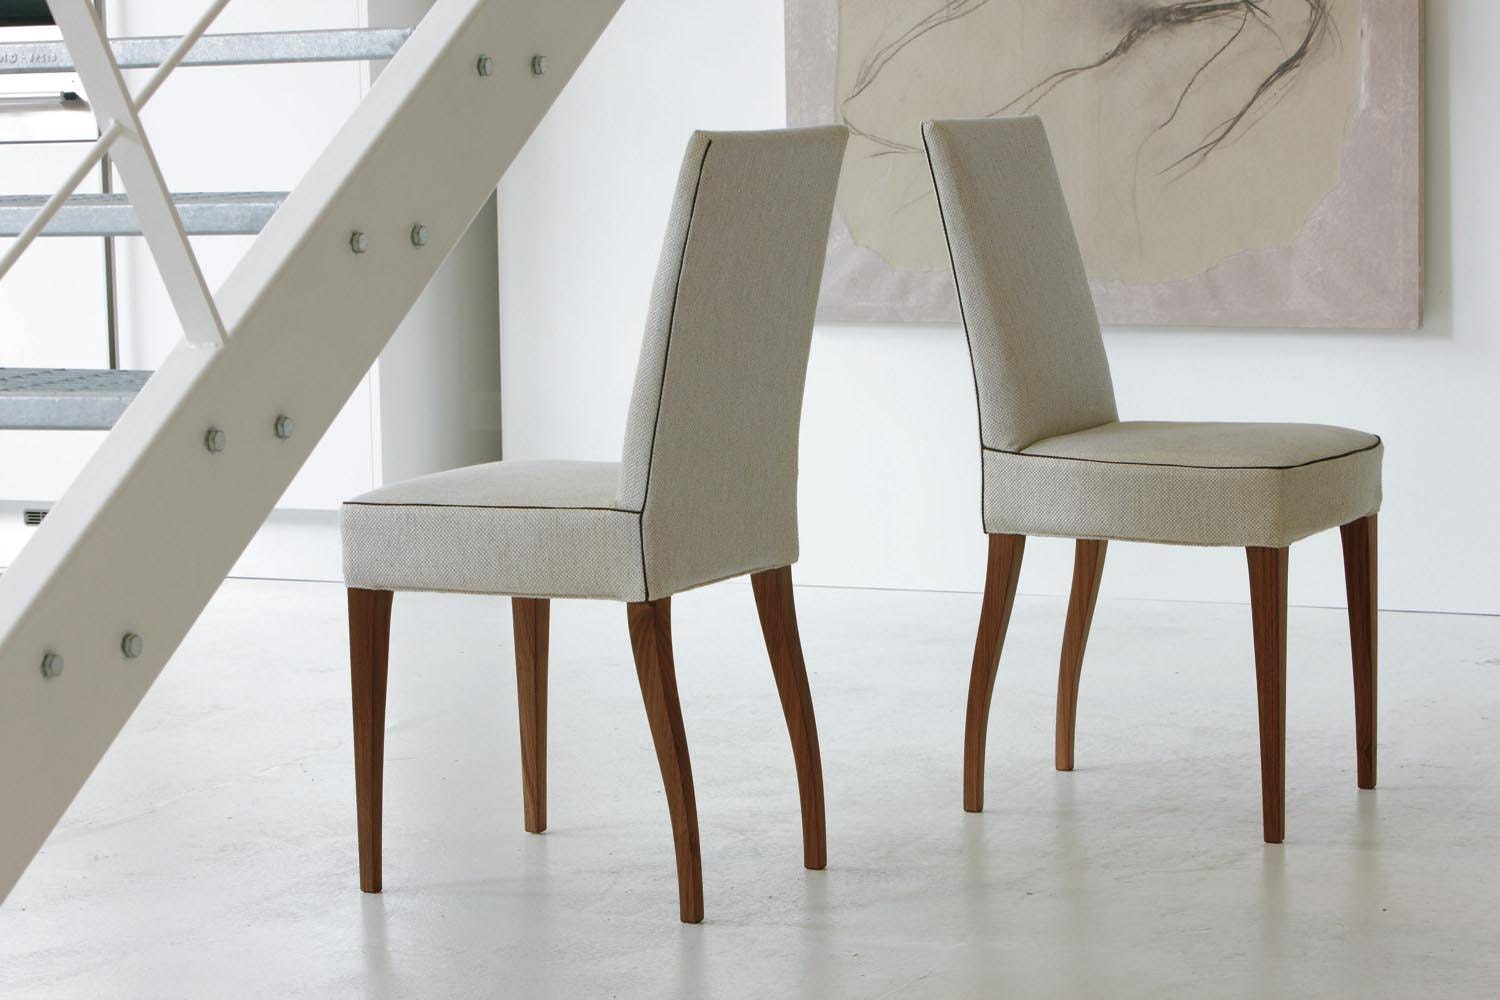 Aretusa Chair by O. Moon for Porada